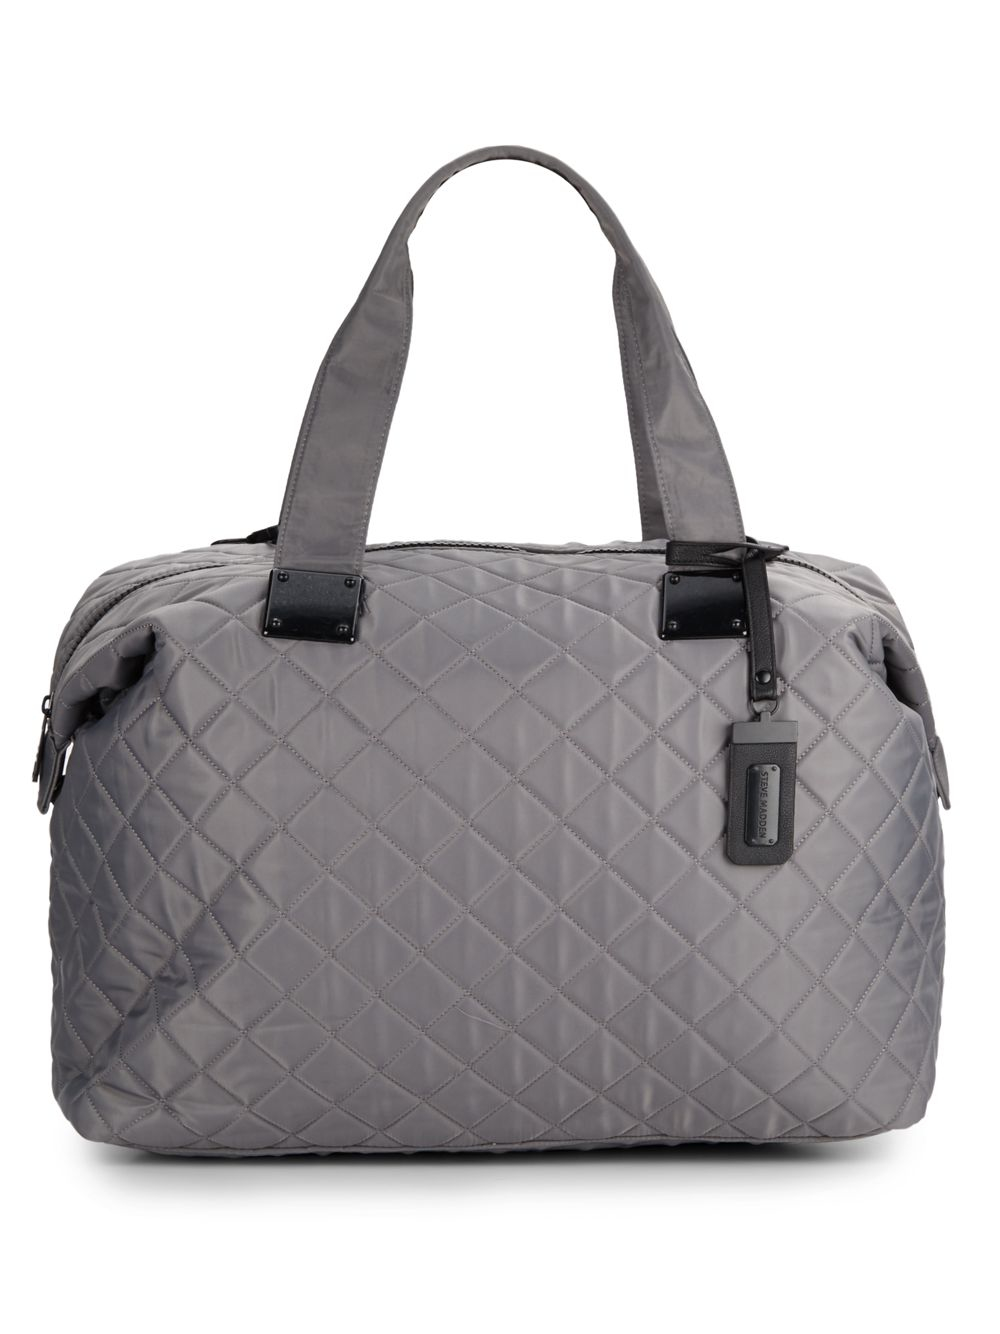 Steve Madden Quilted Duffle Bag In Gray Grey Lyst